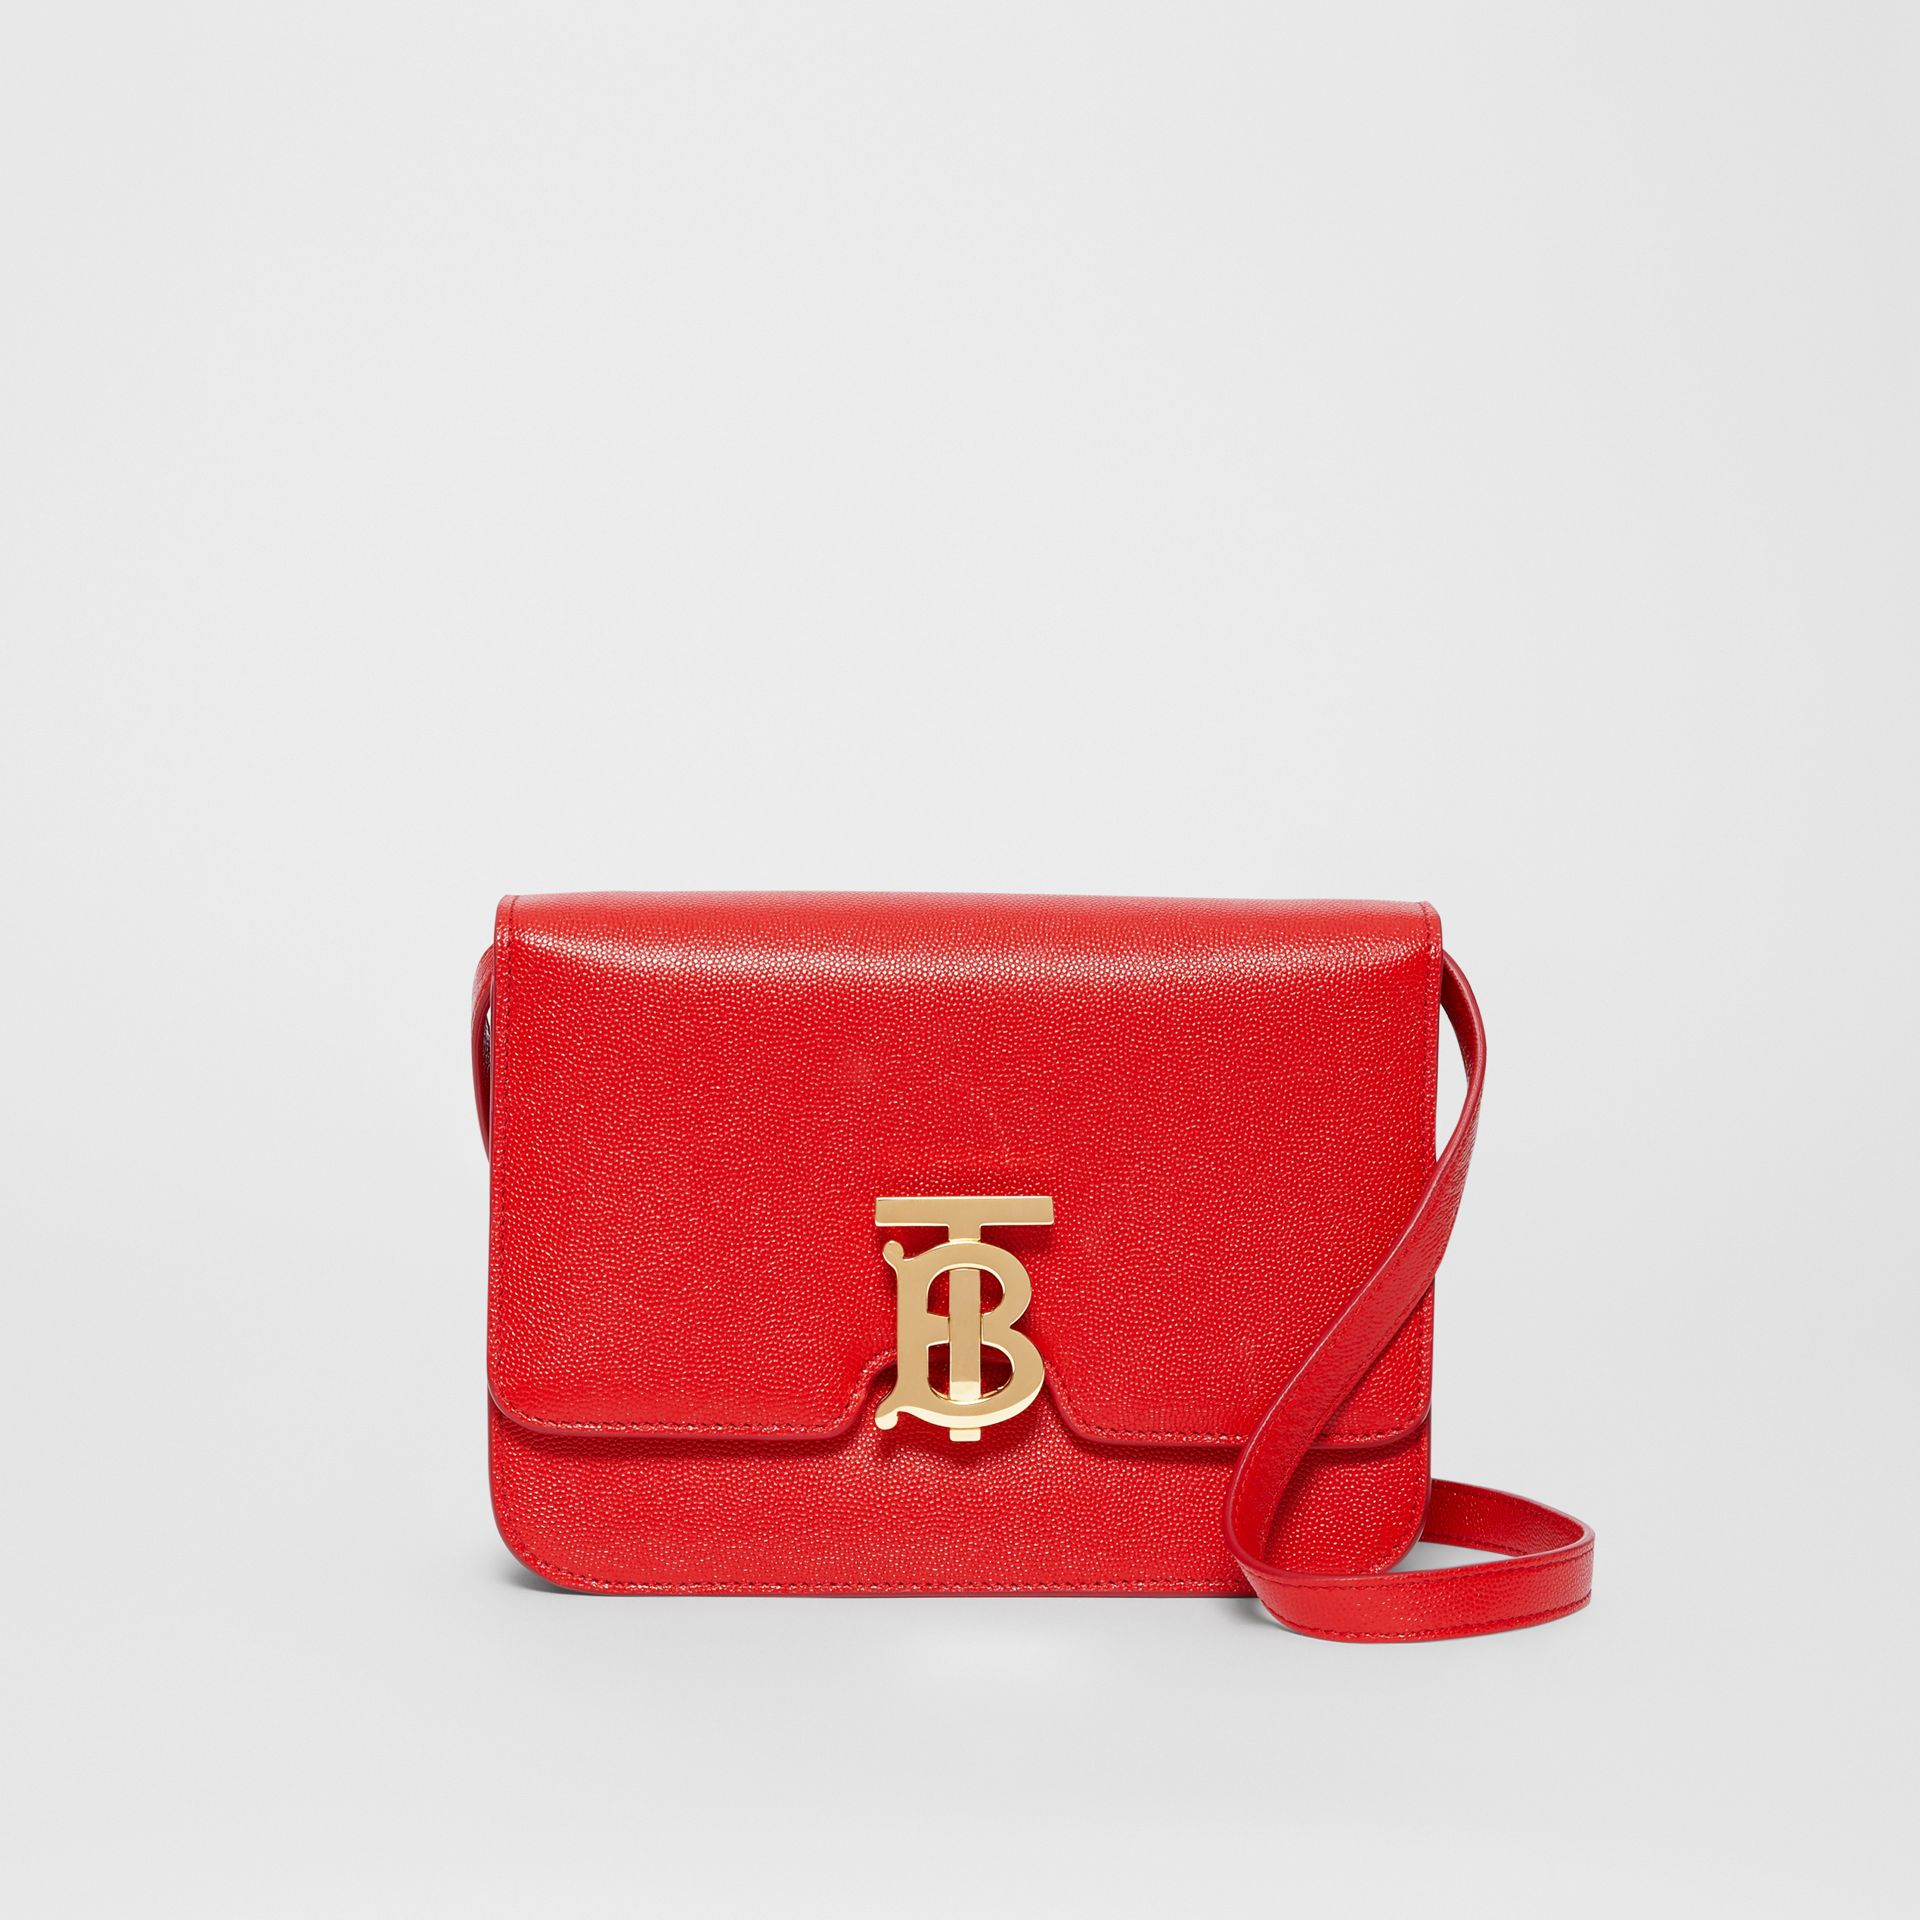 Small Grainy Leather TB Bag in Bright Red - Women | Burberry - gallery image 0